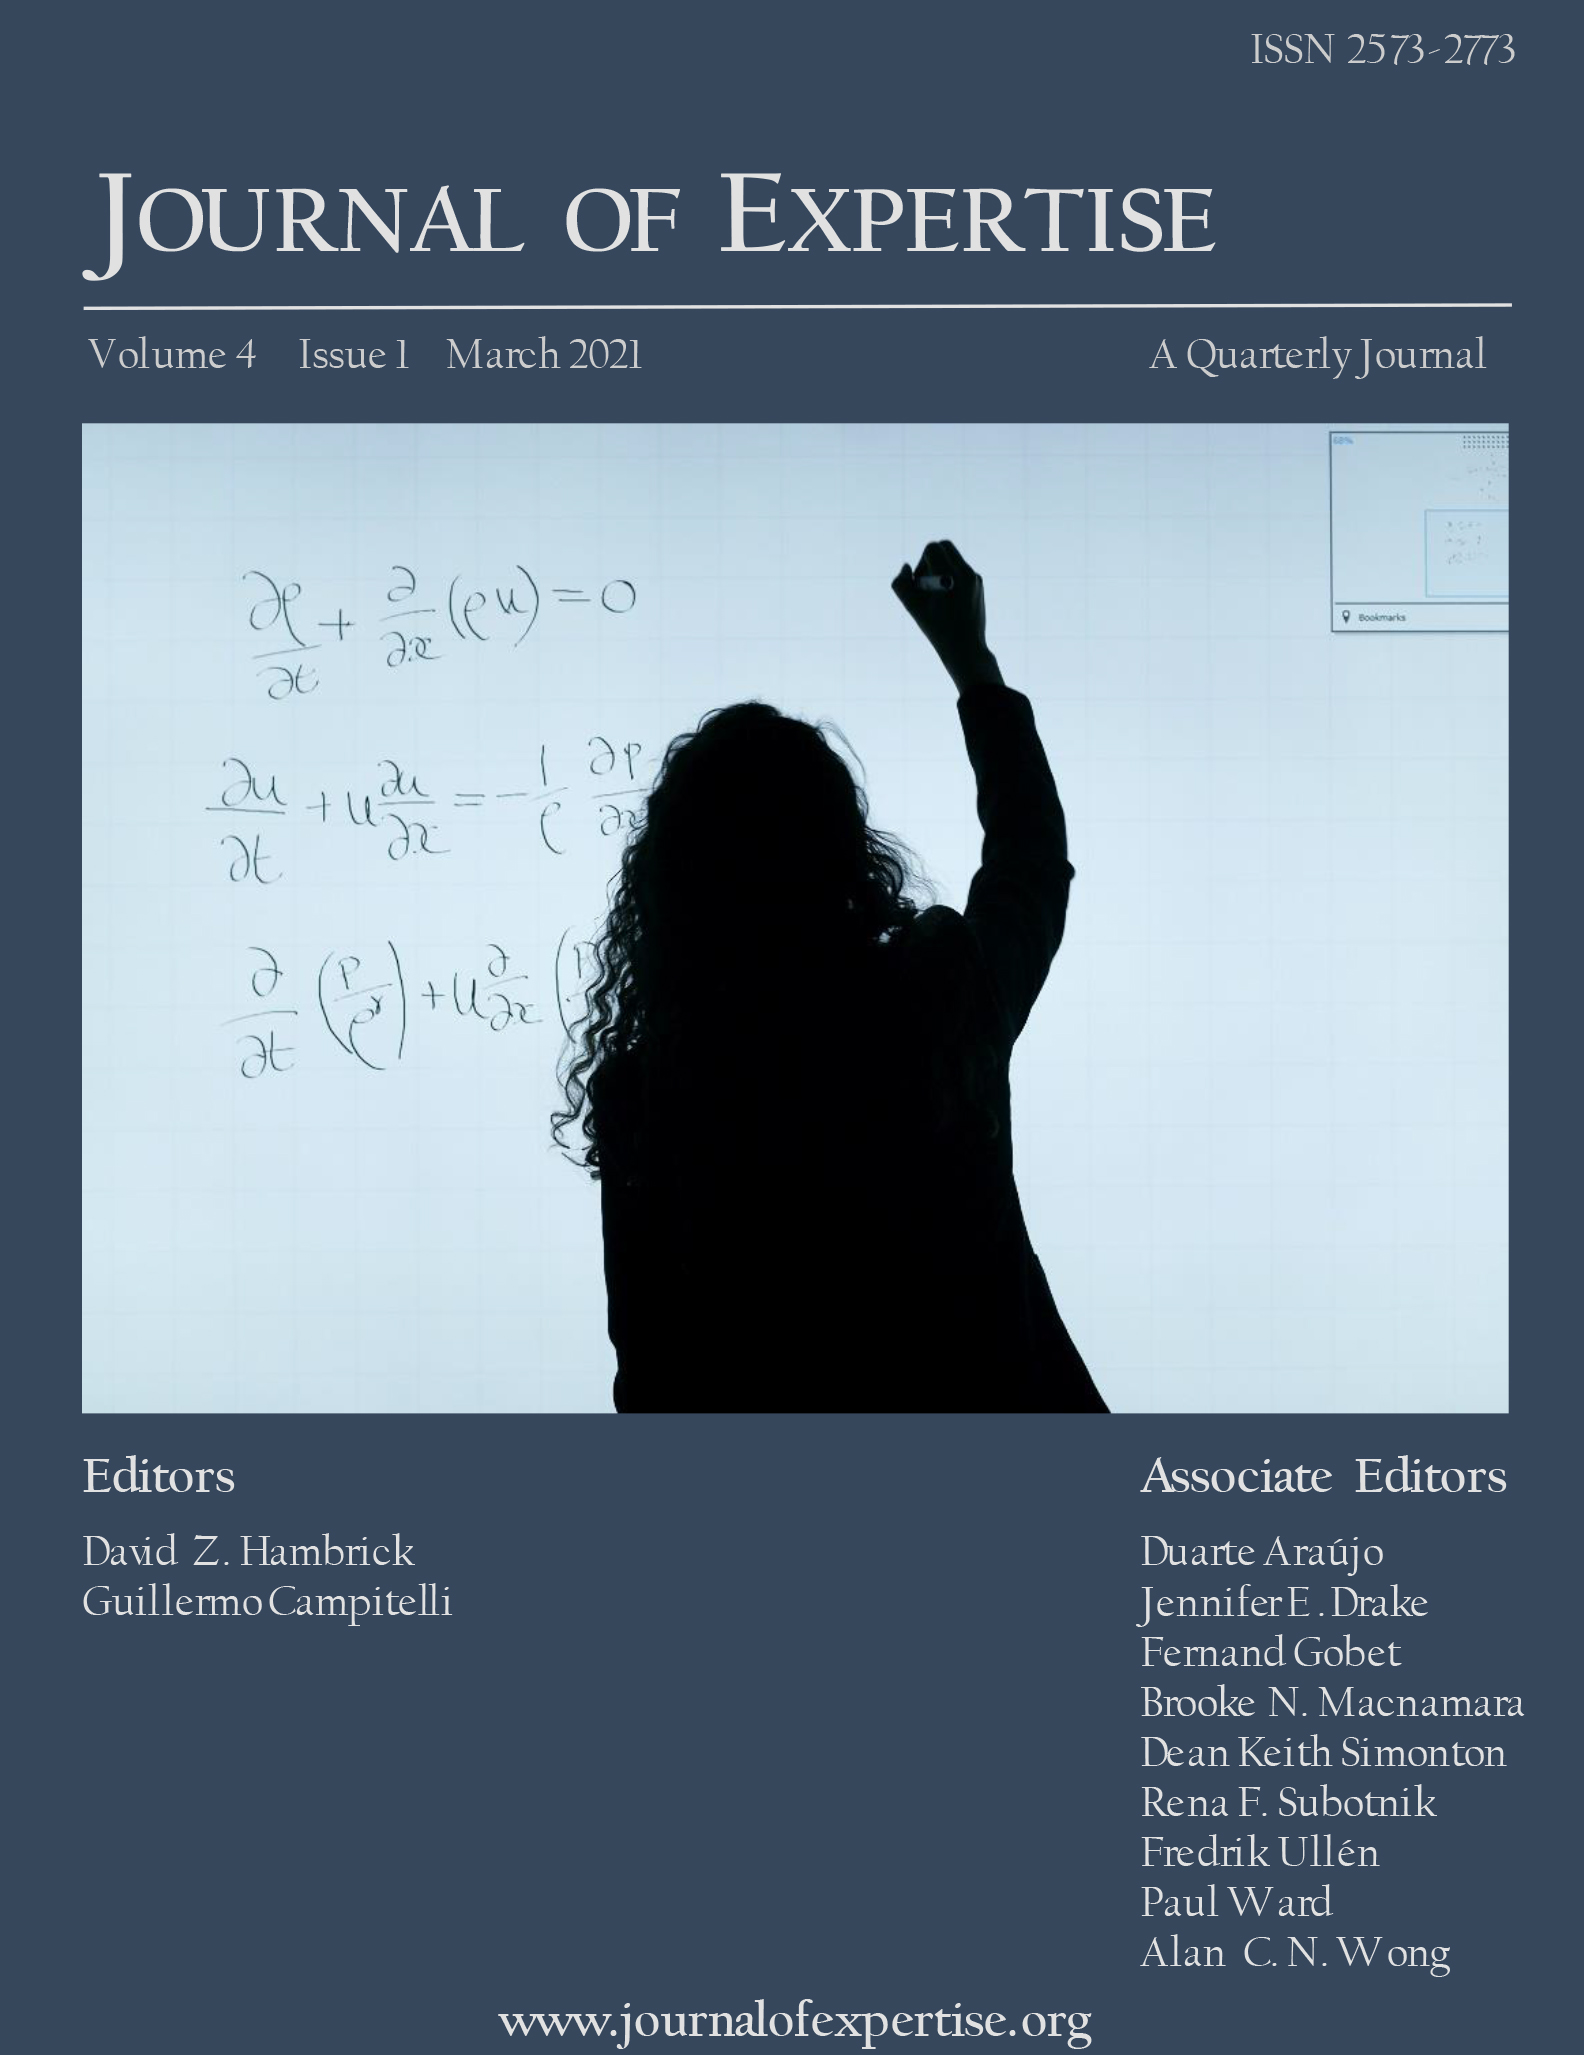 Journal of Expertise Volume 4 Issue 1